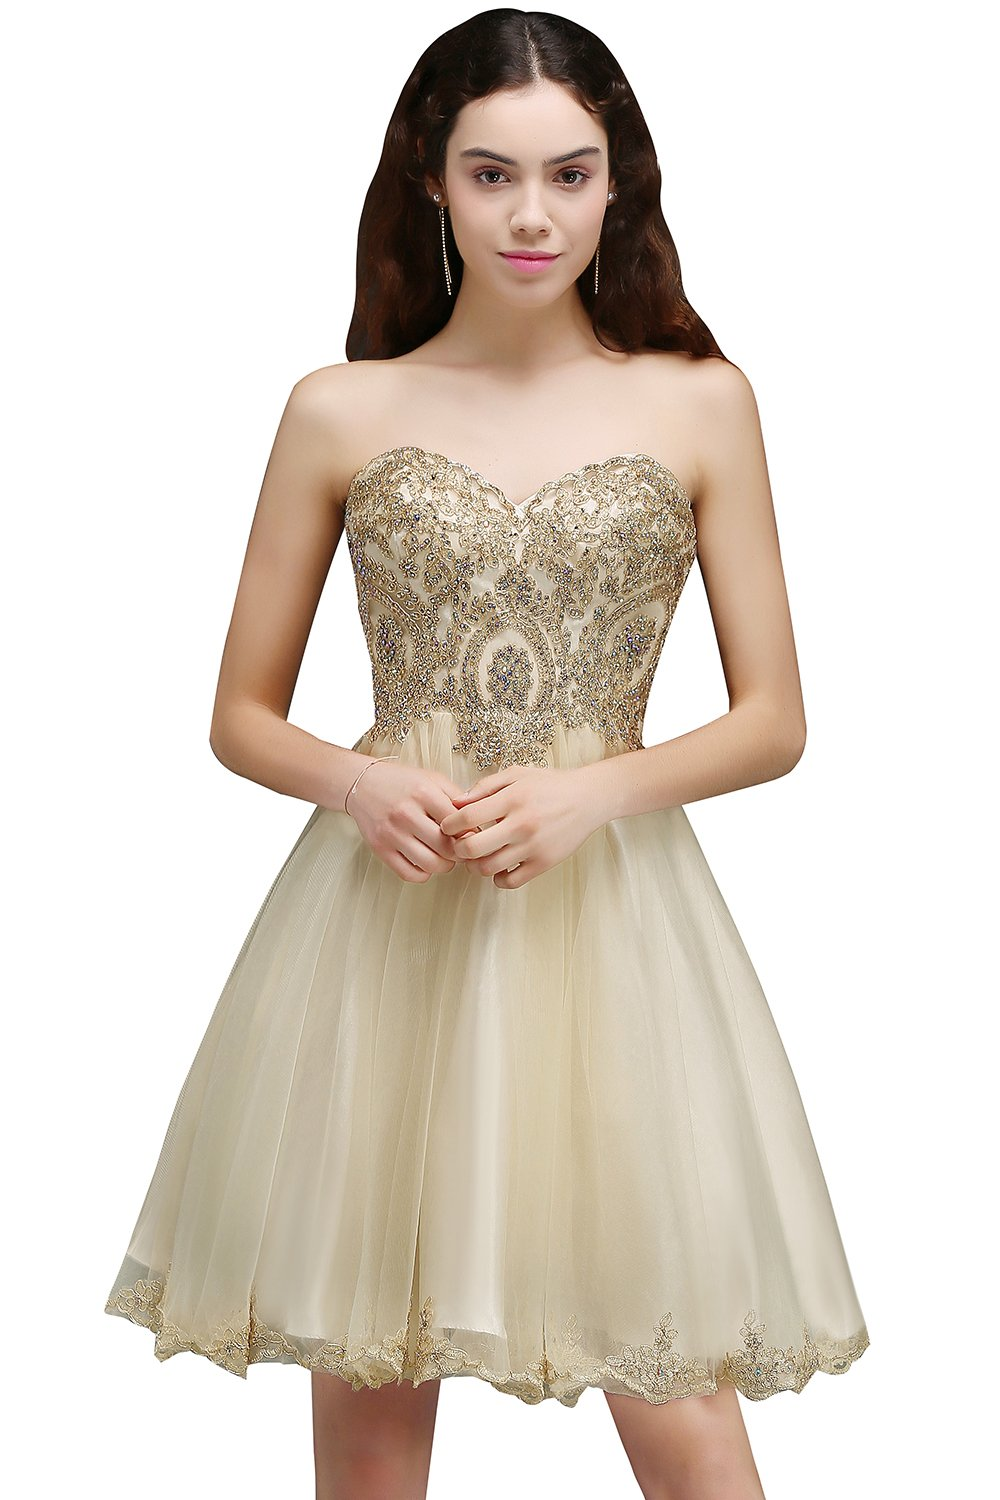 Babyonlinedress Sweetheart Lace Appliques Short Prom Homecoming Dresses 2017